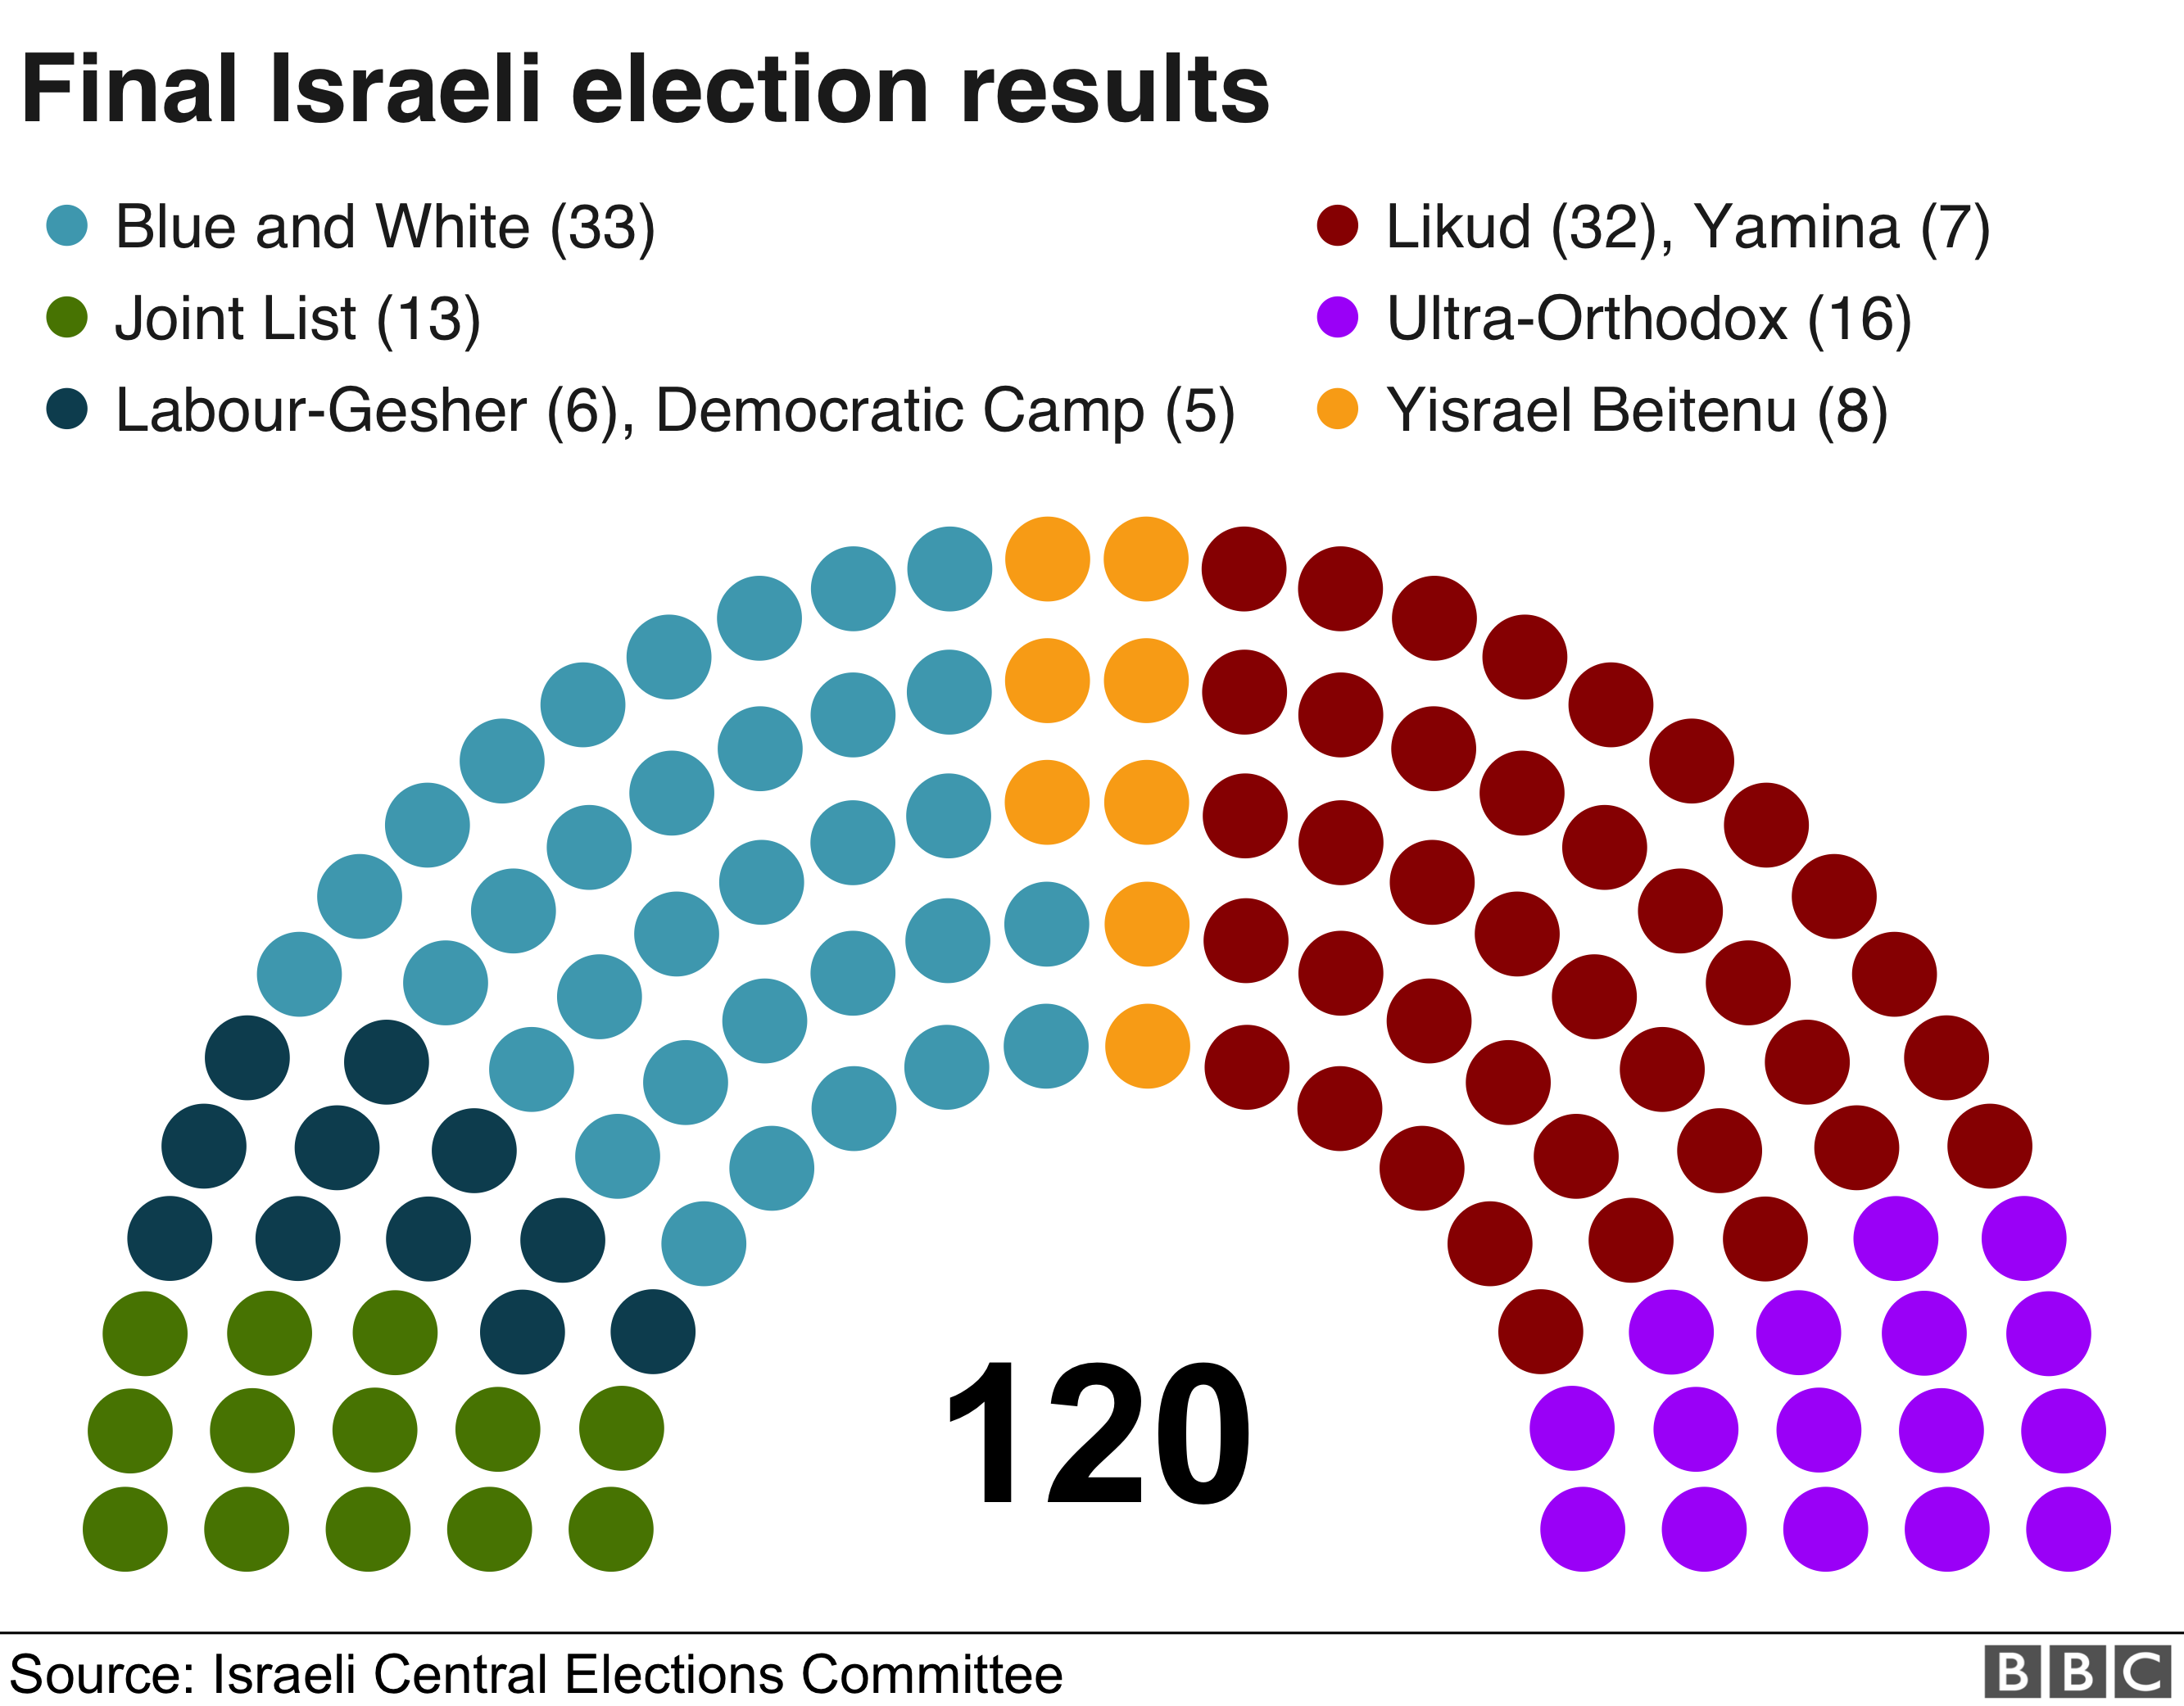 Final results from Israeli election 09/19